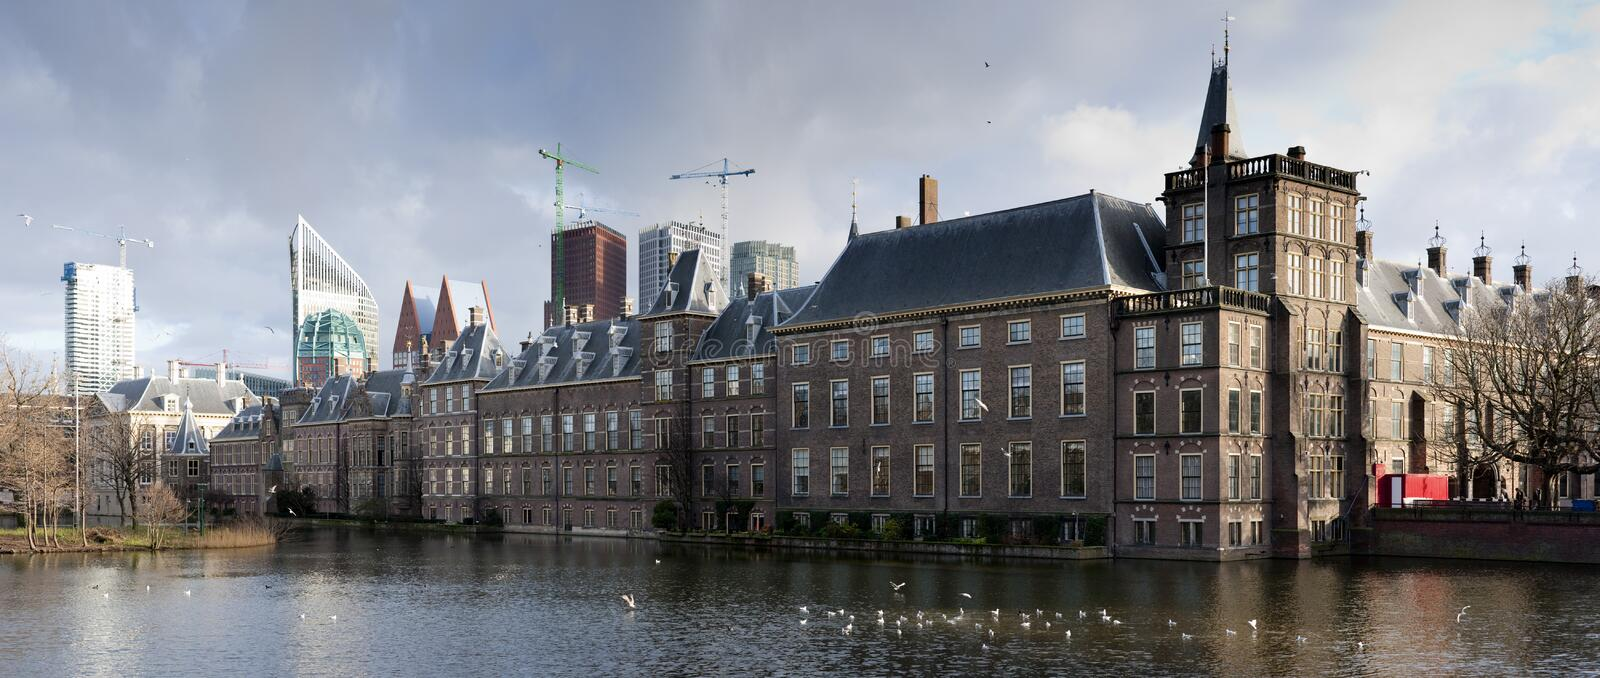 Download Den Haag. Dutch Parliament. Stock Image - Image: 23576659